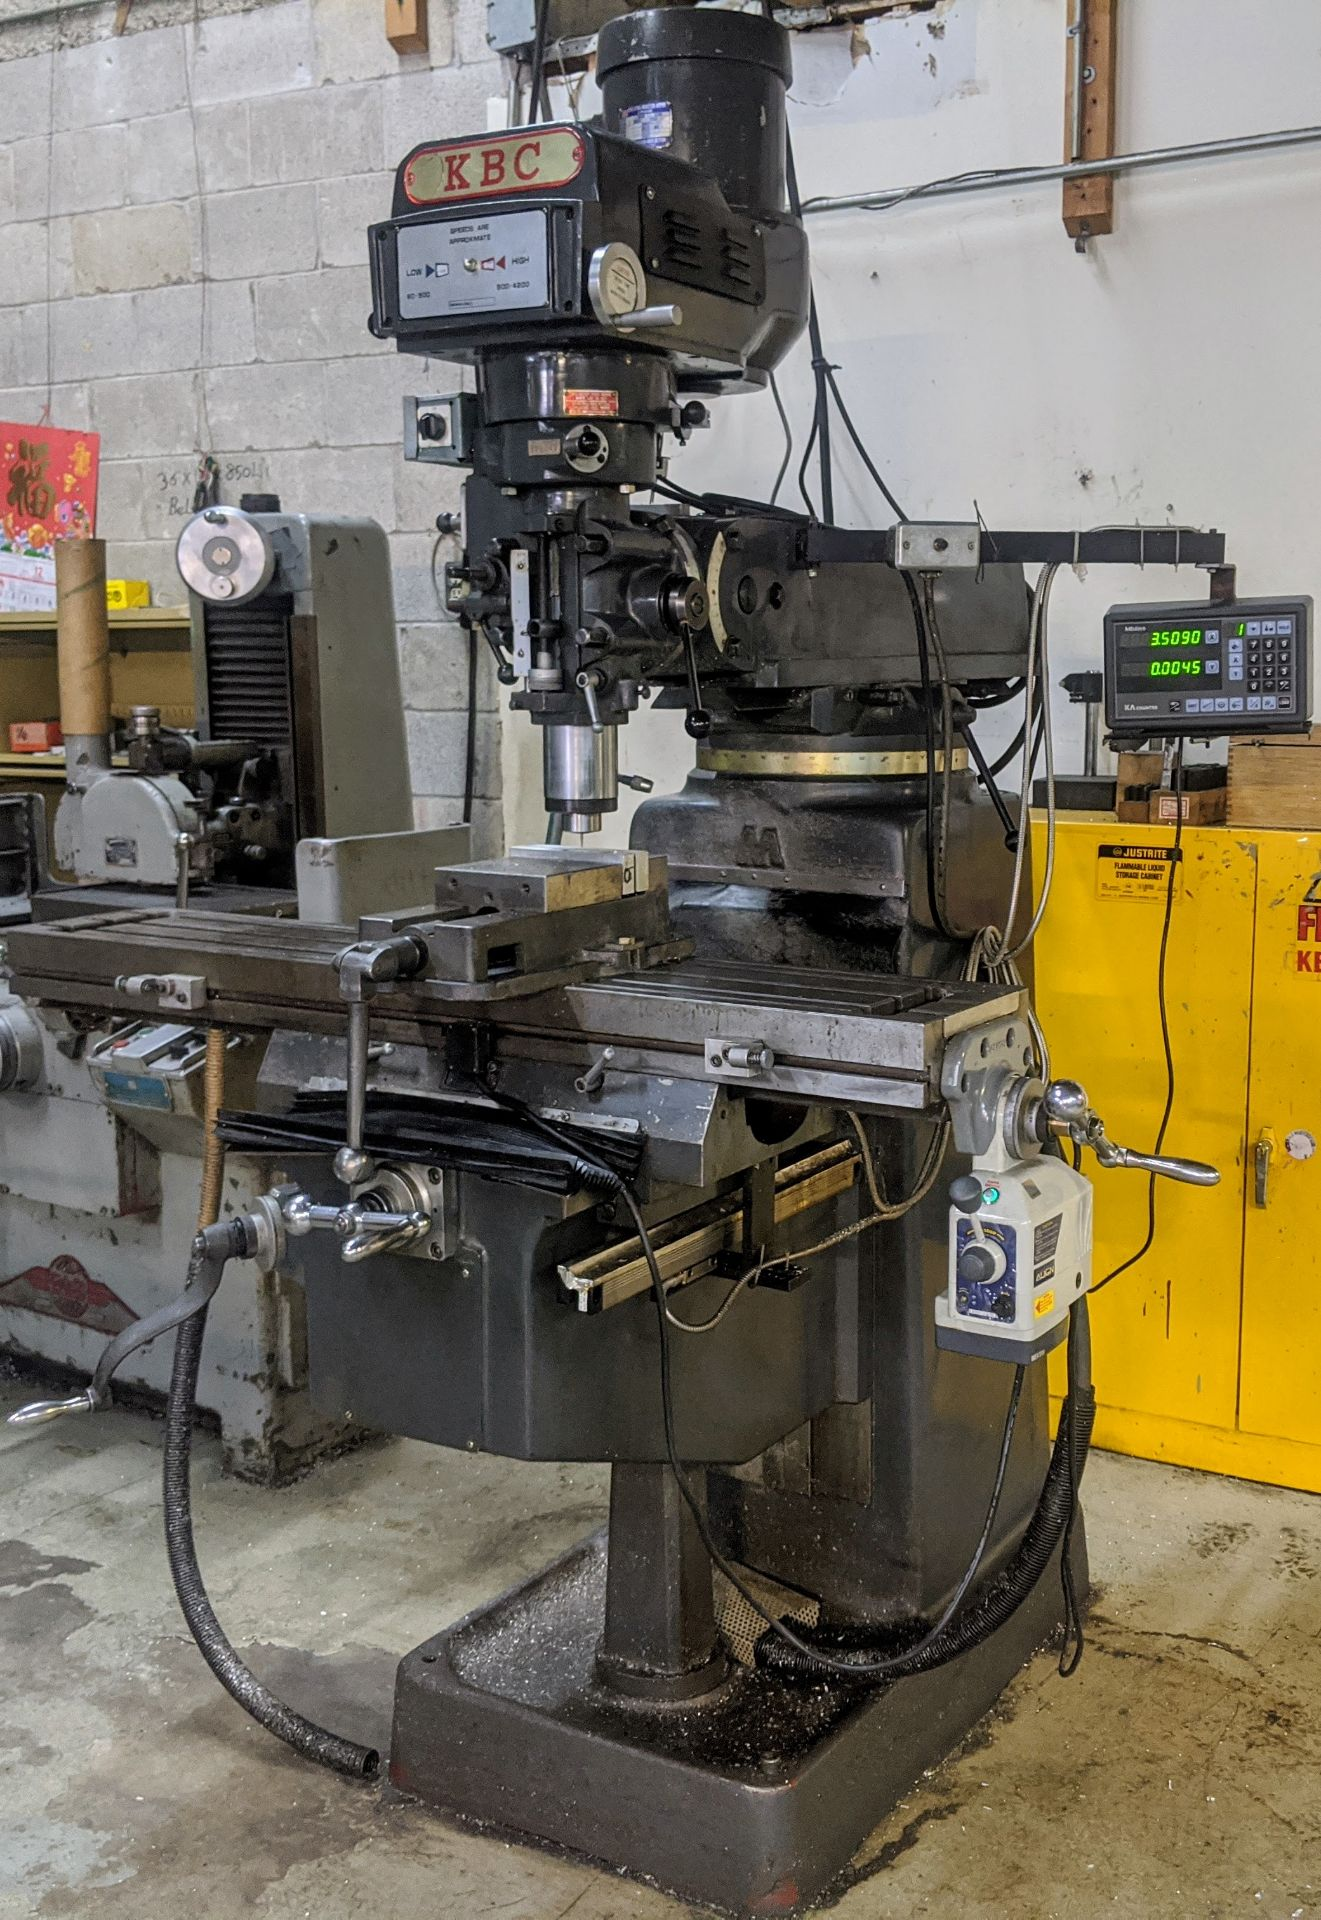 "Lot 32 - KBC Vertical Mill, Mitutoyo 2-Axis DRO, 10"" x 50"" Table, 3HP, 60 – 4,200 RPM, Align Power Feed"